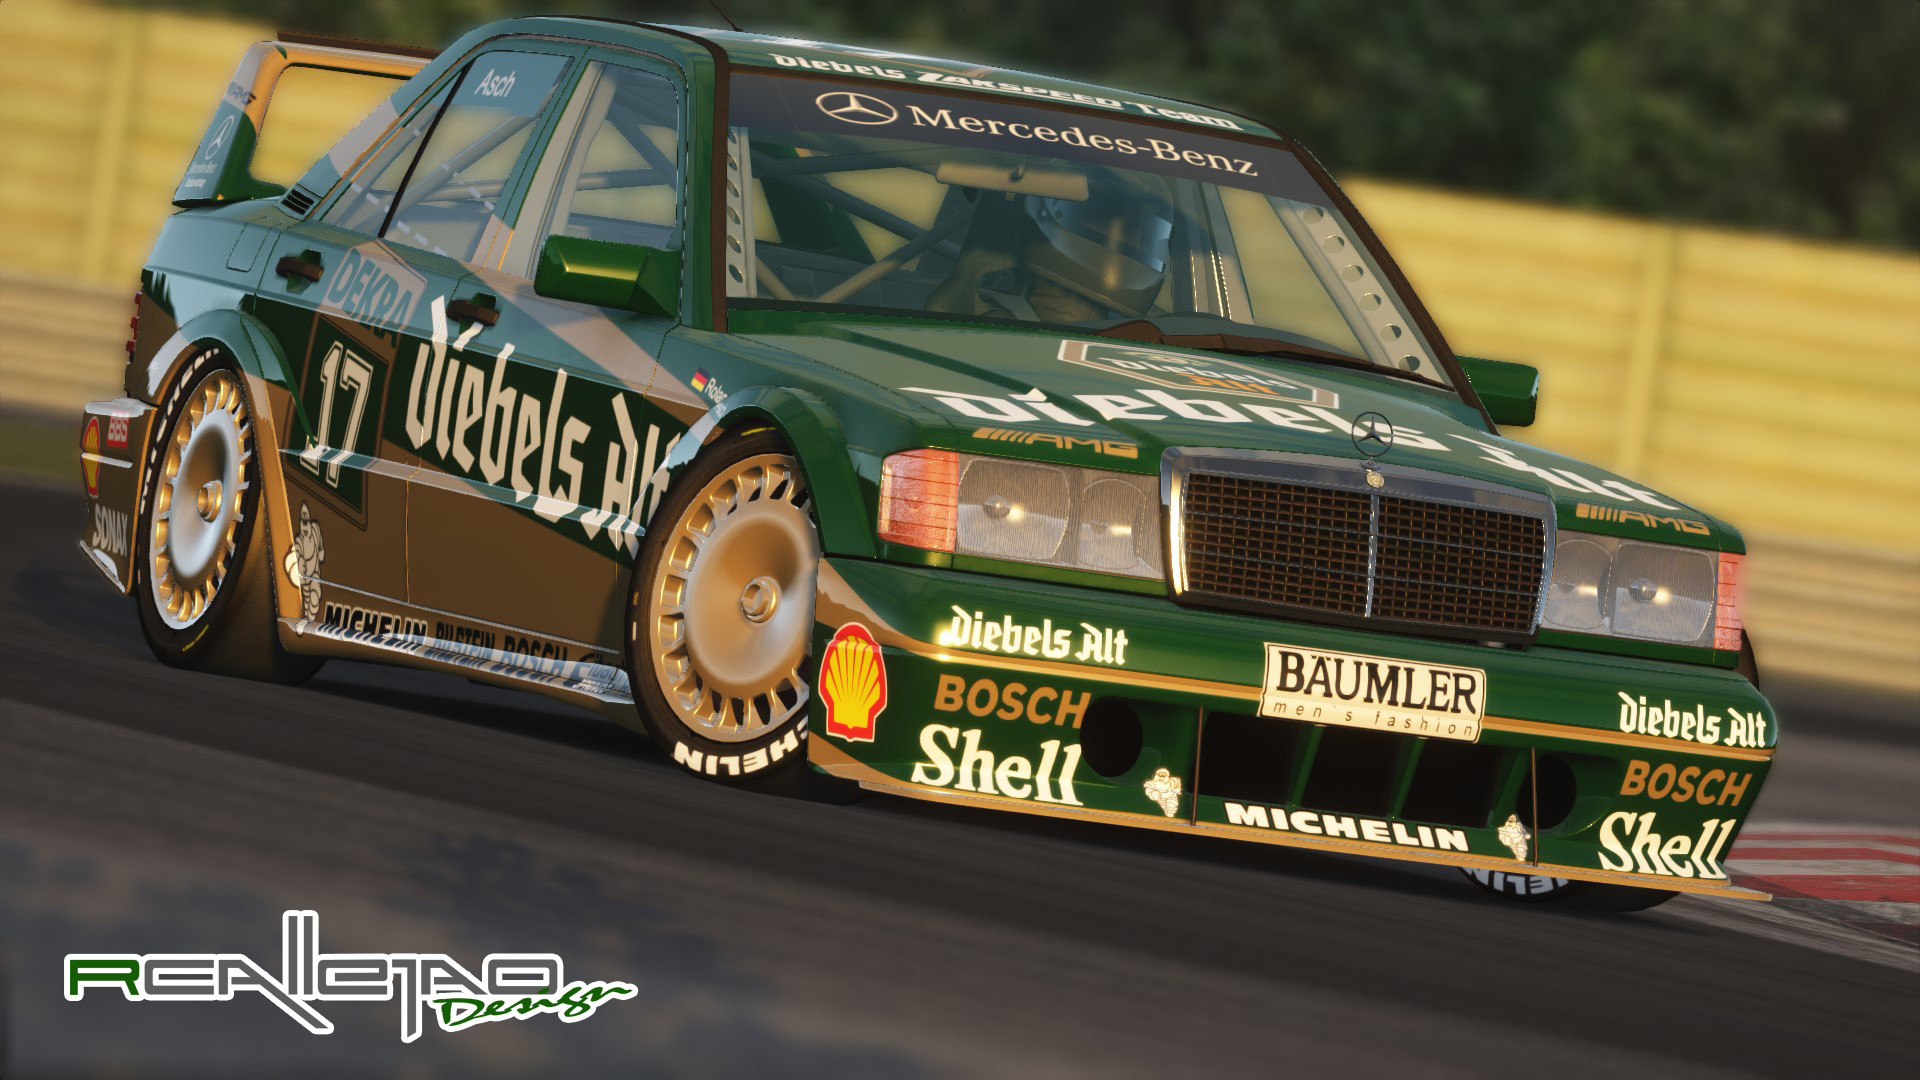 Screenshot_ks_mercedes_190_evo2_magione_16-3-115-17-49-5.jpg